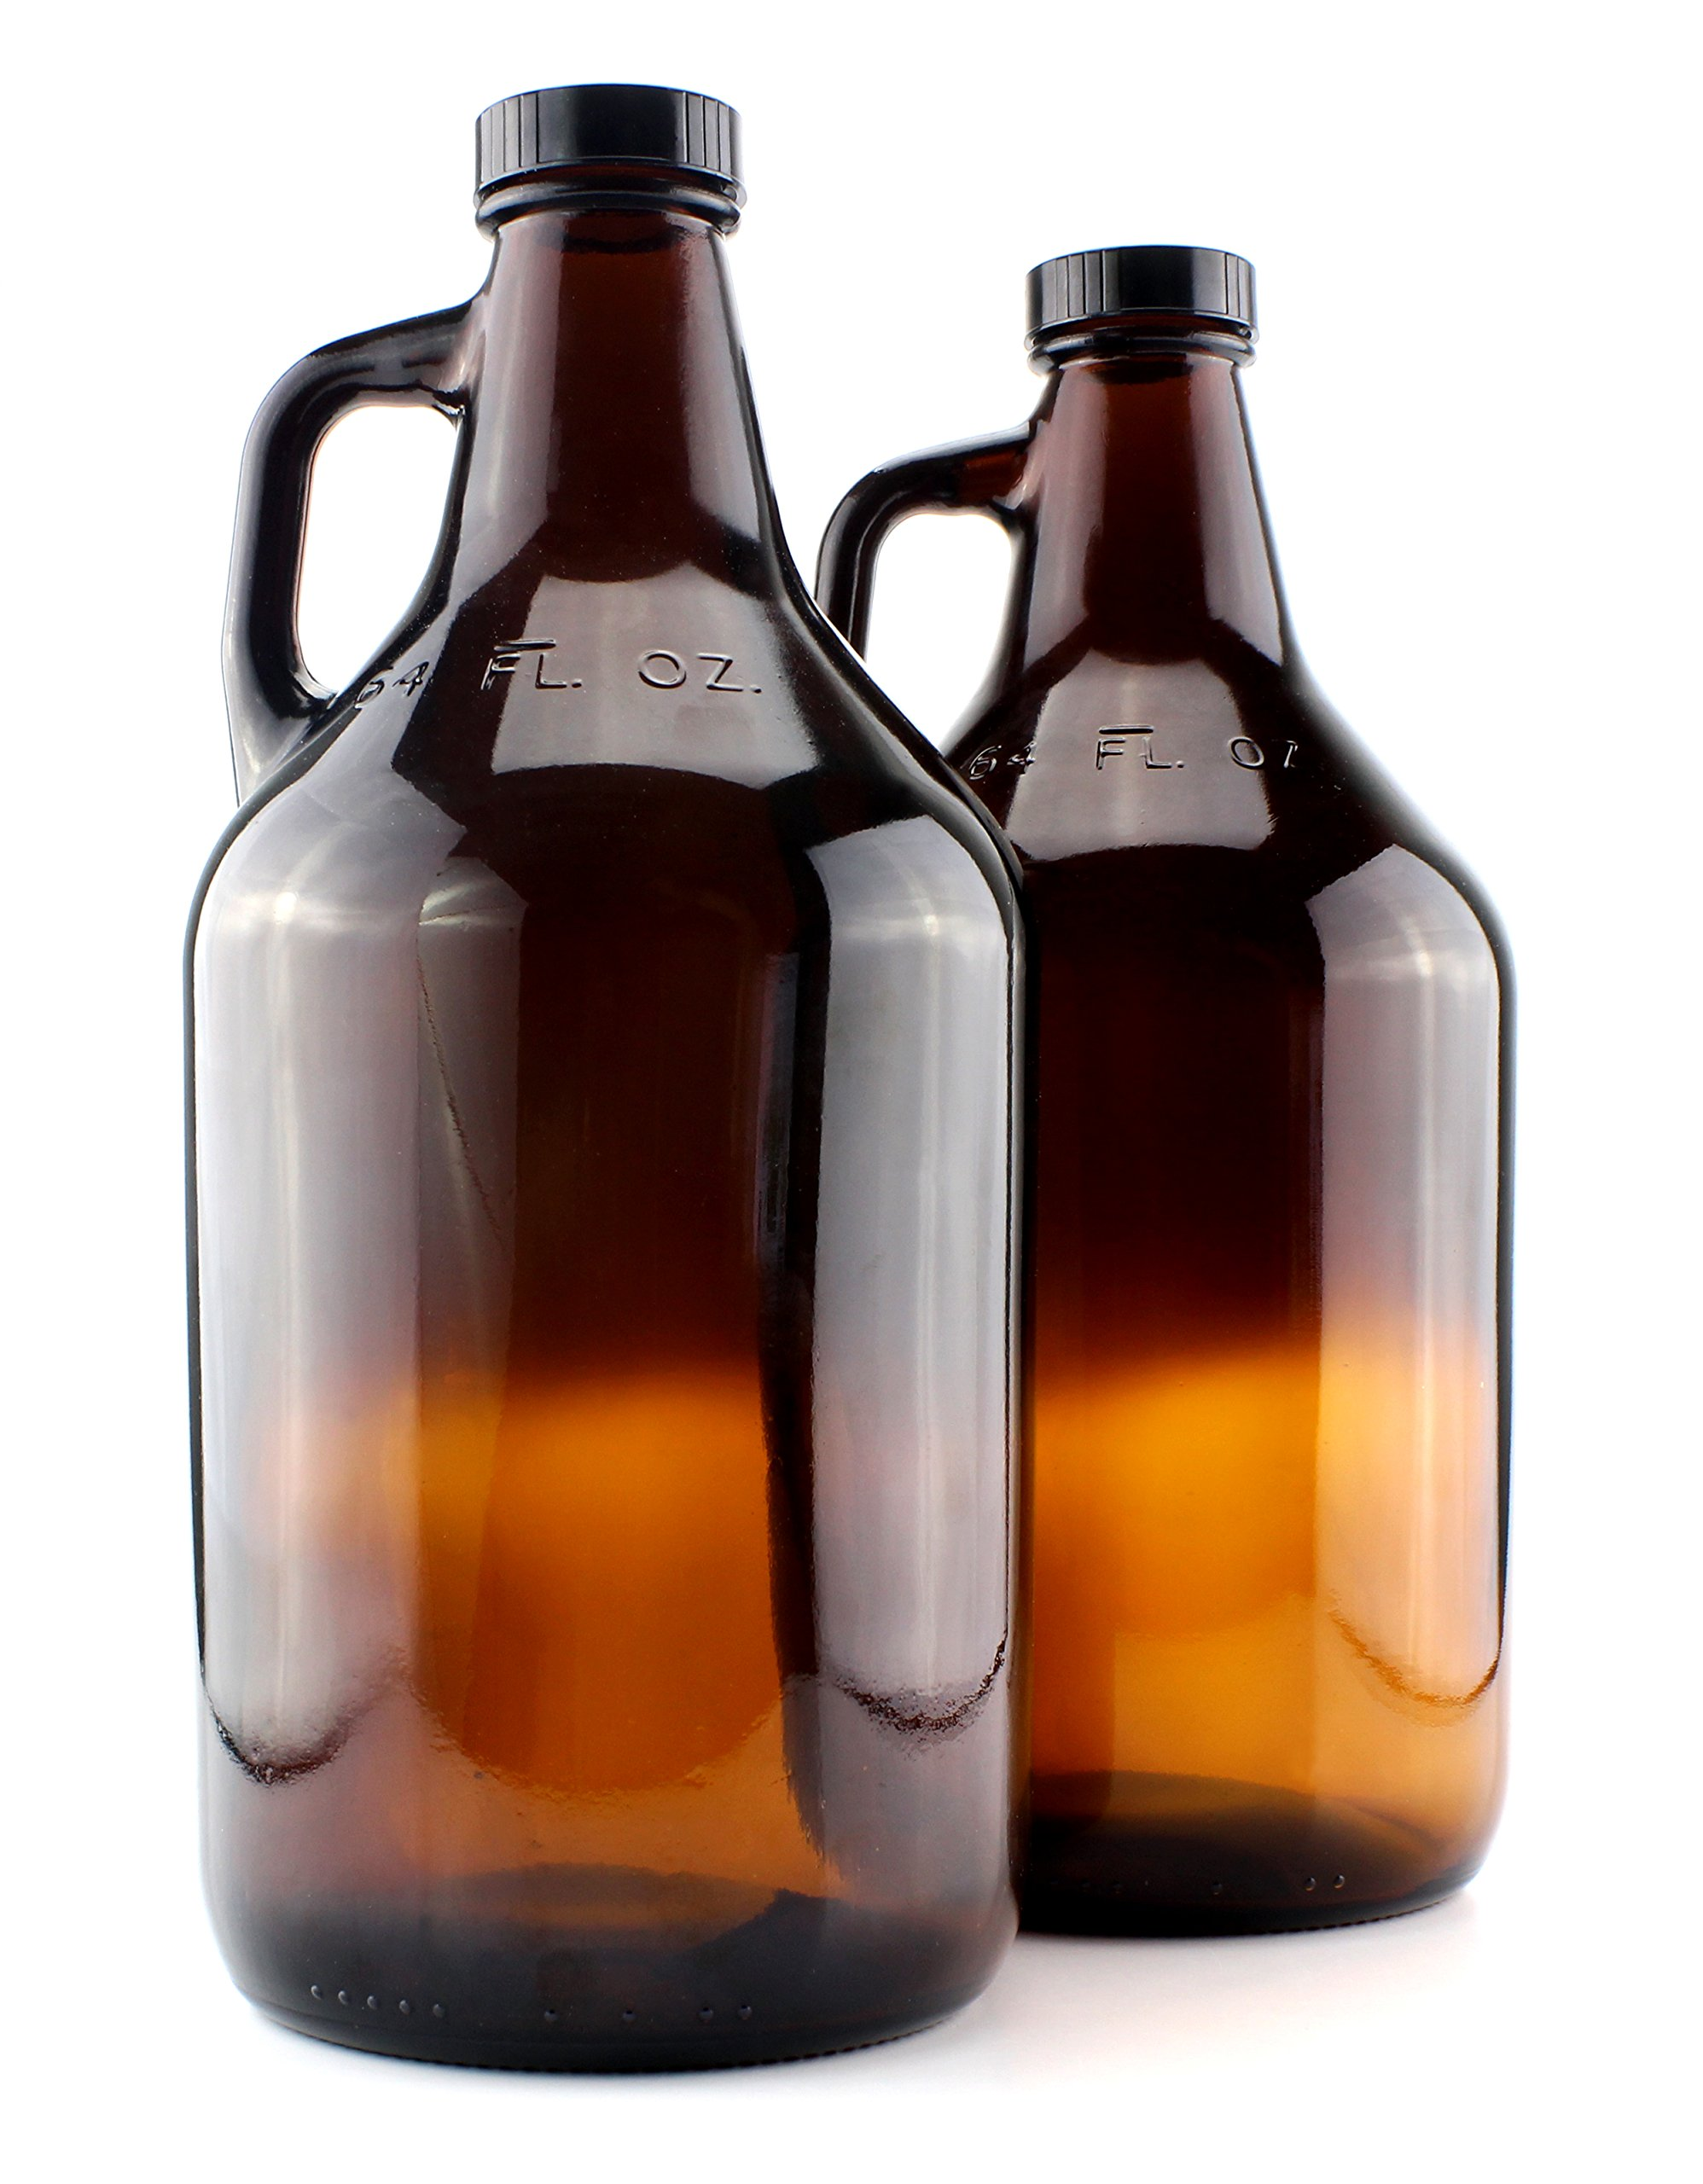 Amber Glass Growler Jugs 64-Ounce/Half Gallon (2-Pack) w/Black Phenolic Lids, Great for Kombucha, Home Brew, Distilled Water, Cider & More by Cornucopia Brands